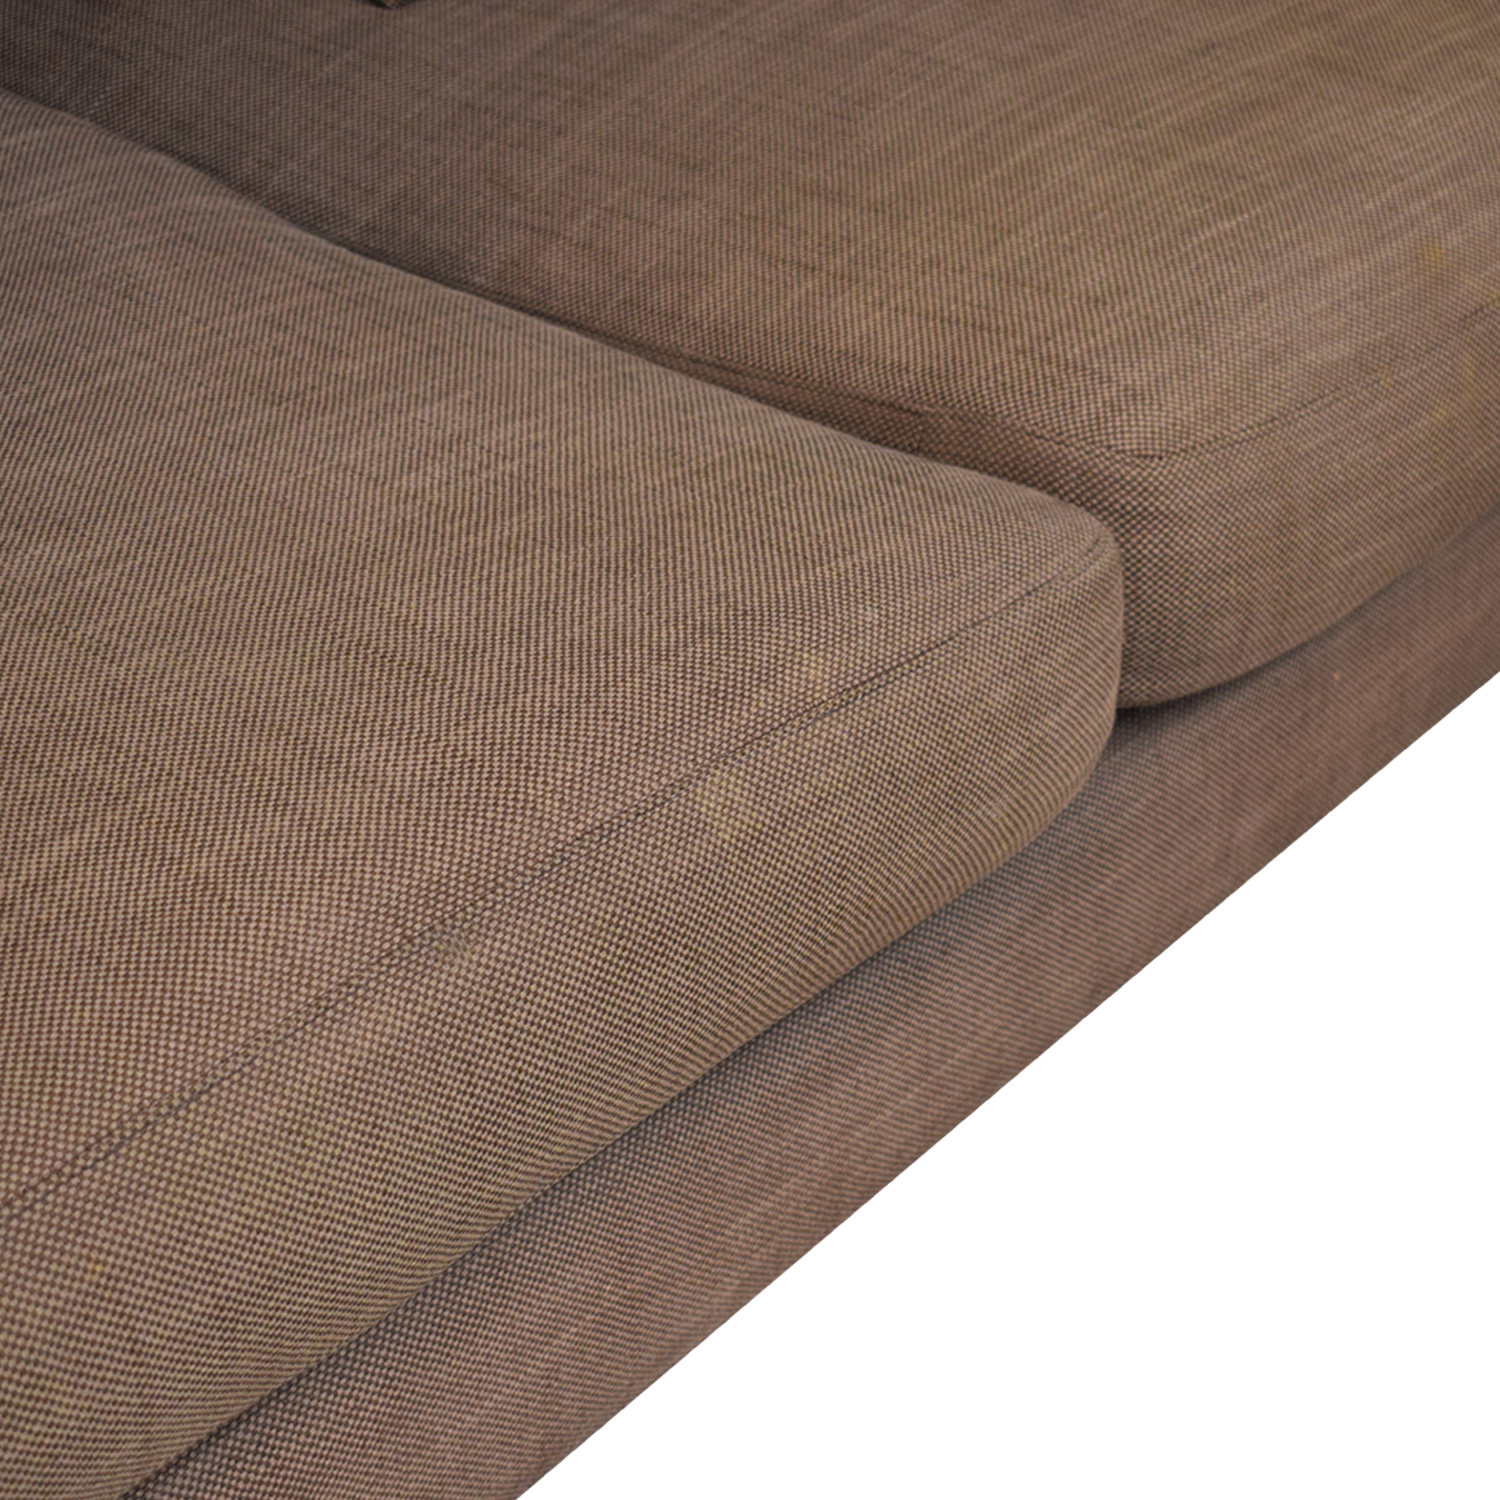 Camerich Camerich Lazy Time Custom Sectional Sofa discount